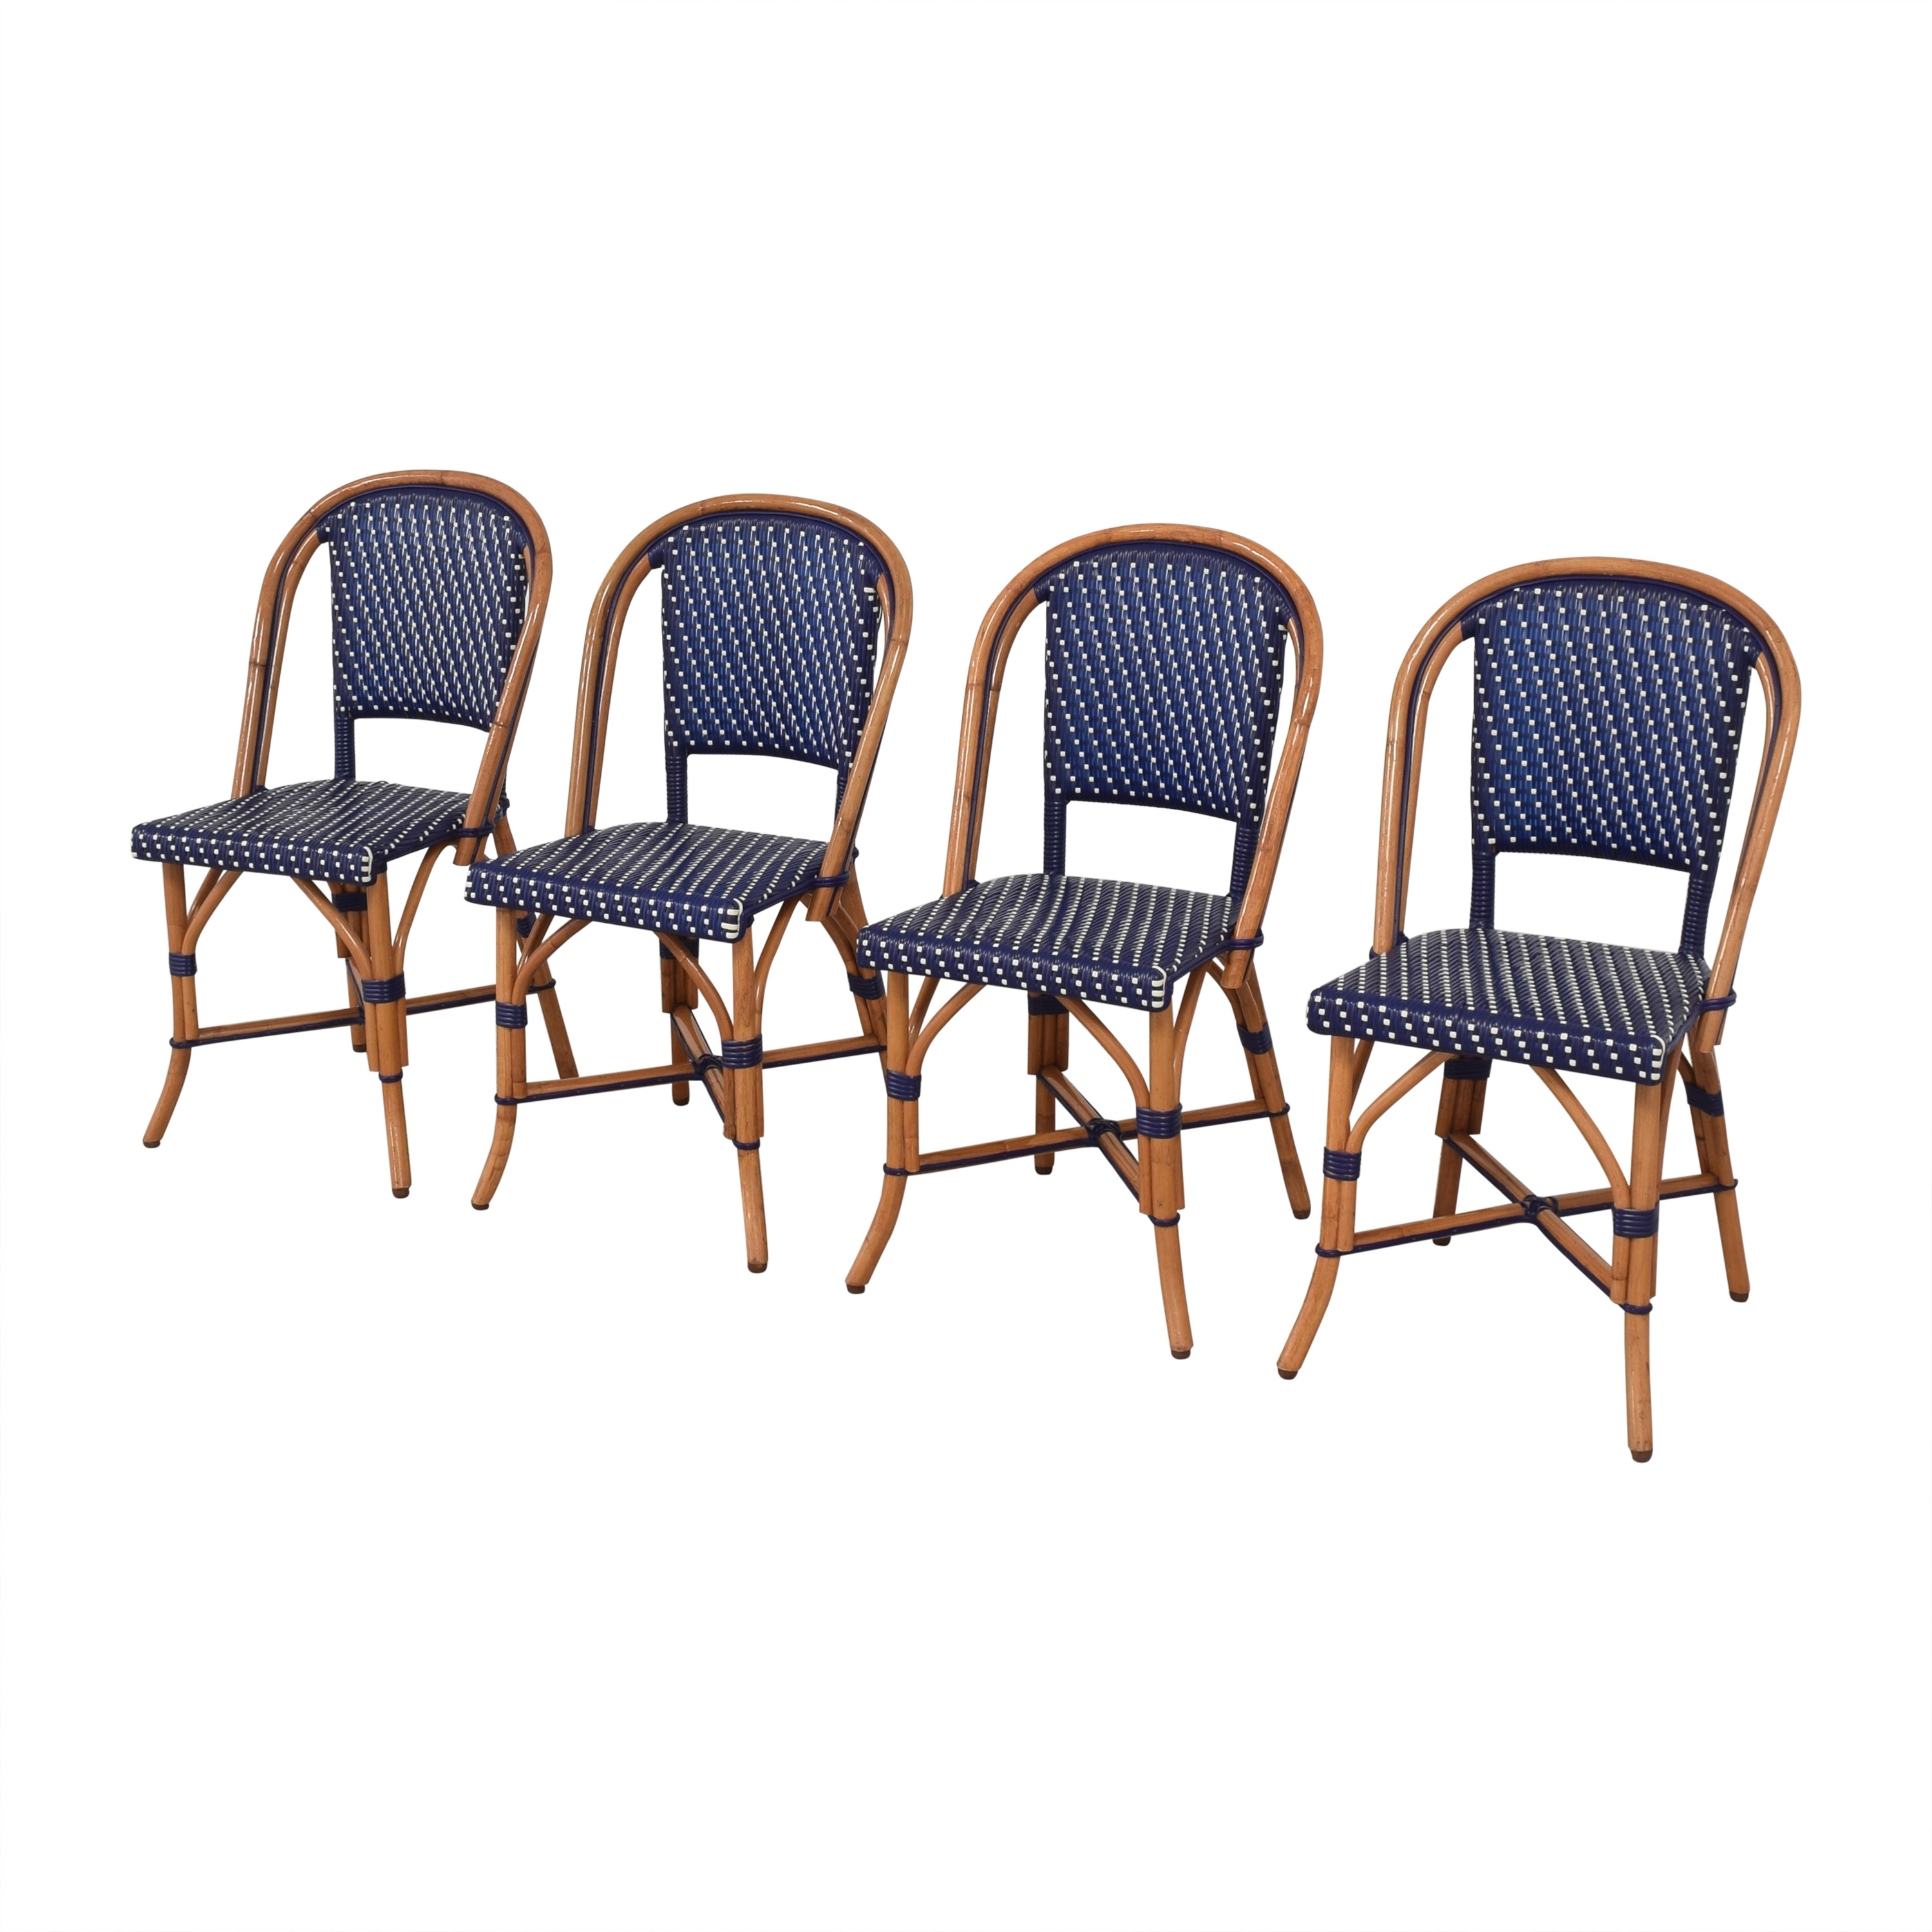 French-Style Bistro Chairs used